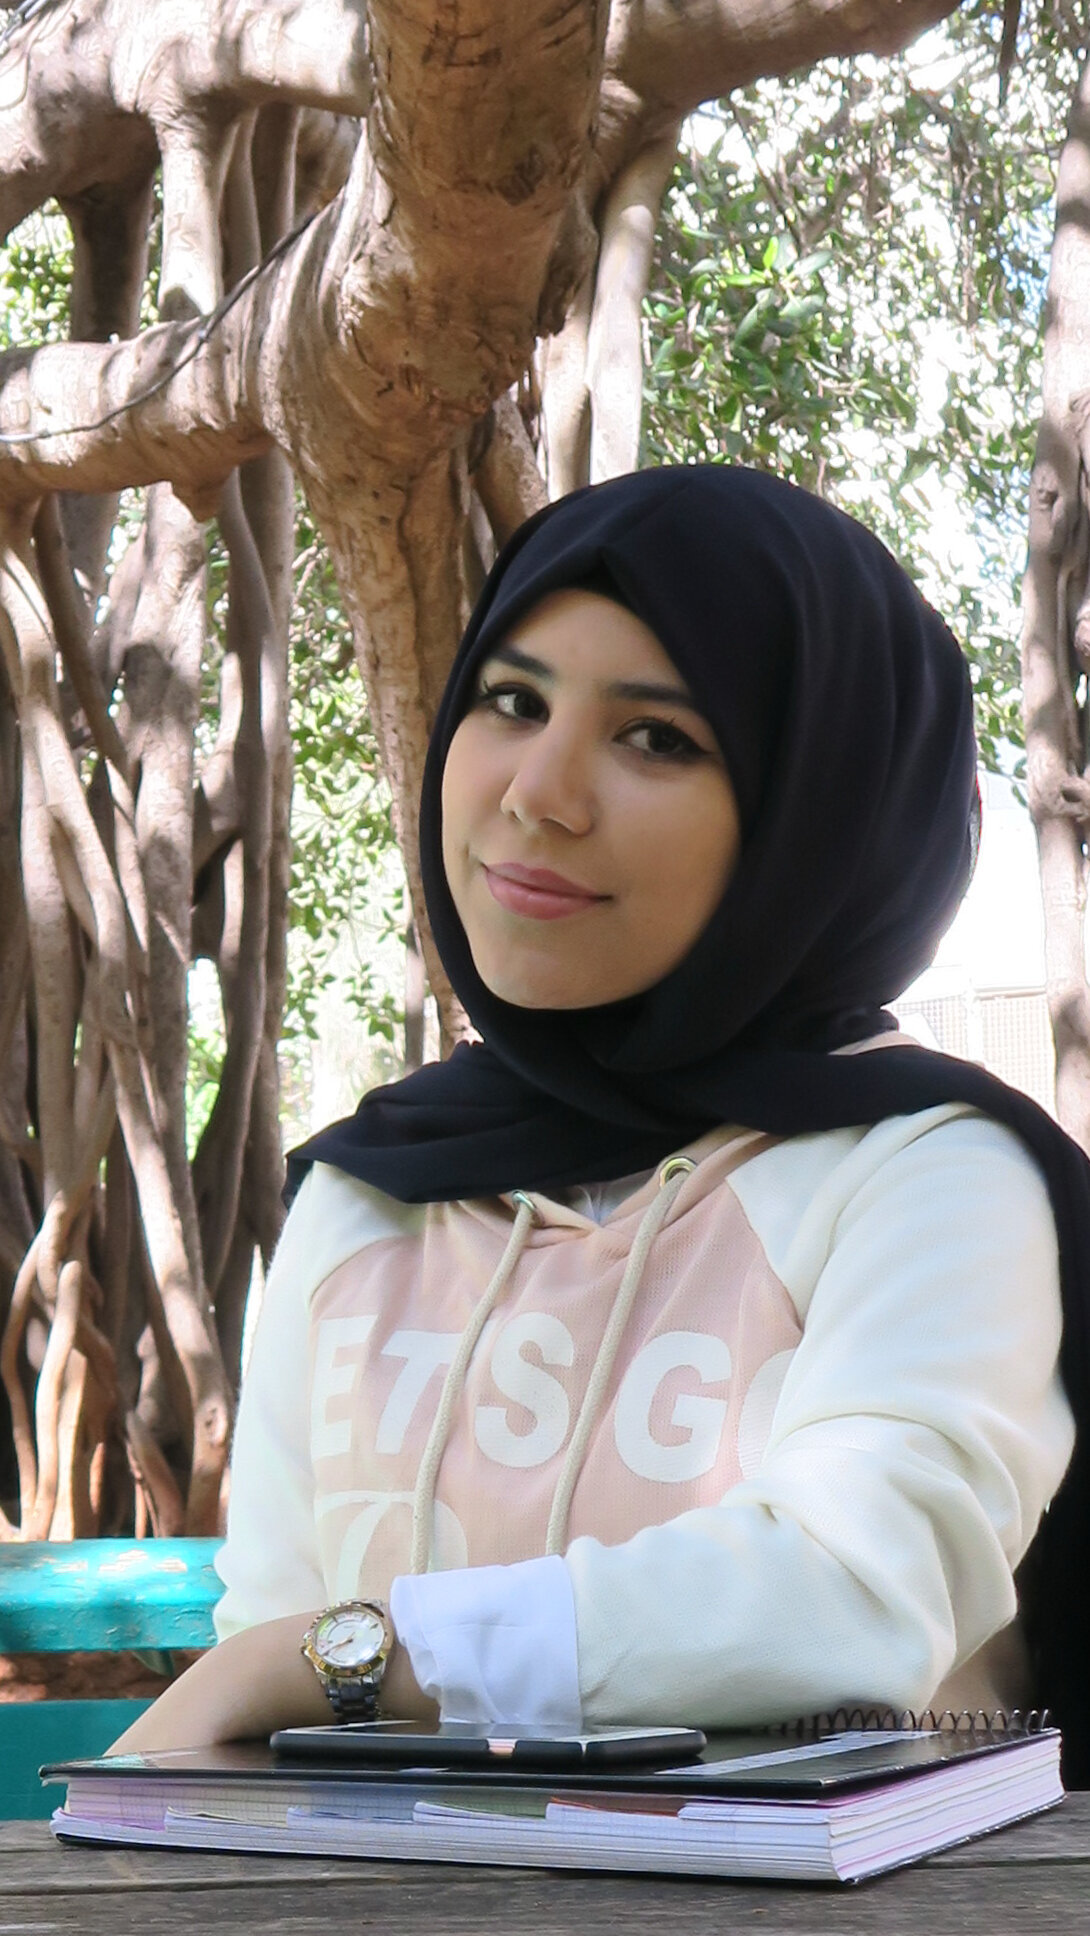 "Nour, Civil Engineering student - Final-year Civil Engineering student Nour Chartouni is looking forward to using the knowledge and skills she has gained at LAU to help solve technical issues, and, more importantly, contribute to building sustainable cities.Chartouni, who expects to graduate in 2020, is well on her way to reaching her goal, making it onto the Dean's Distinction list for outstanding performance in her studies, as well as playing an active role in her campus community by being involved in various clubs. ""At LAU, one of the most important values I acquired is that of perseverance. I have learned the essence of success is determination and hard work which eventually are appreciated and lead to great achievements,"" says Nour, who is eager and ready to start working in her field before continuing her education in a few years.Chartouni's achievements were made possible through the generous donations of LAU's network of donors whose kindness enabled her to attend the university. ""Joining LAU has completely changed my life and without the scholarship, there would be no other way for me to afford the tuition fees,"" adds Chartouni, whose success and ambition is yet another example of the positive impact that LAU's network of supporters continue to make."